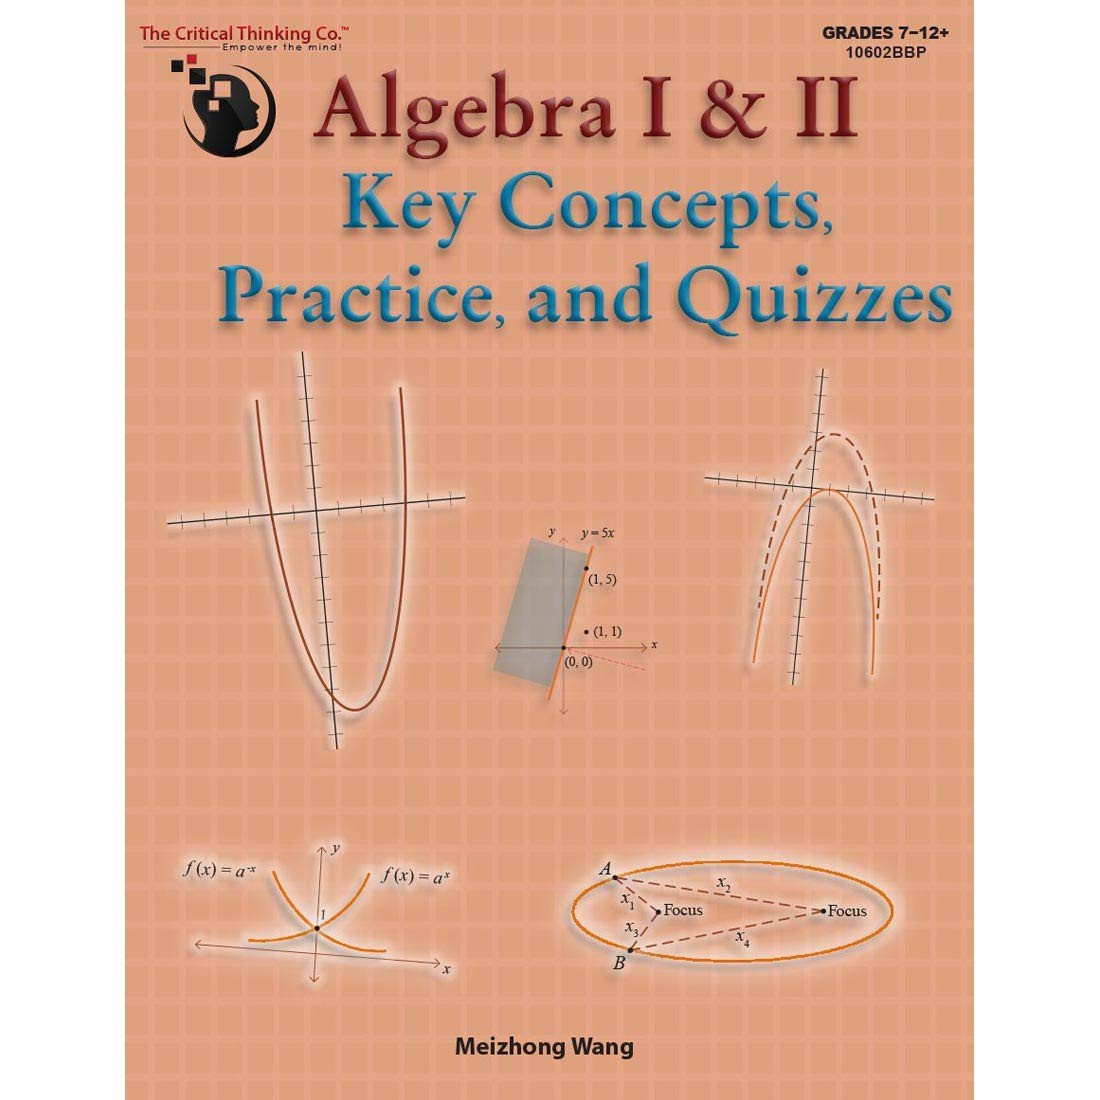 Algebra I & II Key Concepts, Practice, and Quizzes (Grades 7-12) The Critical Thinking Company